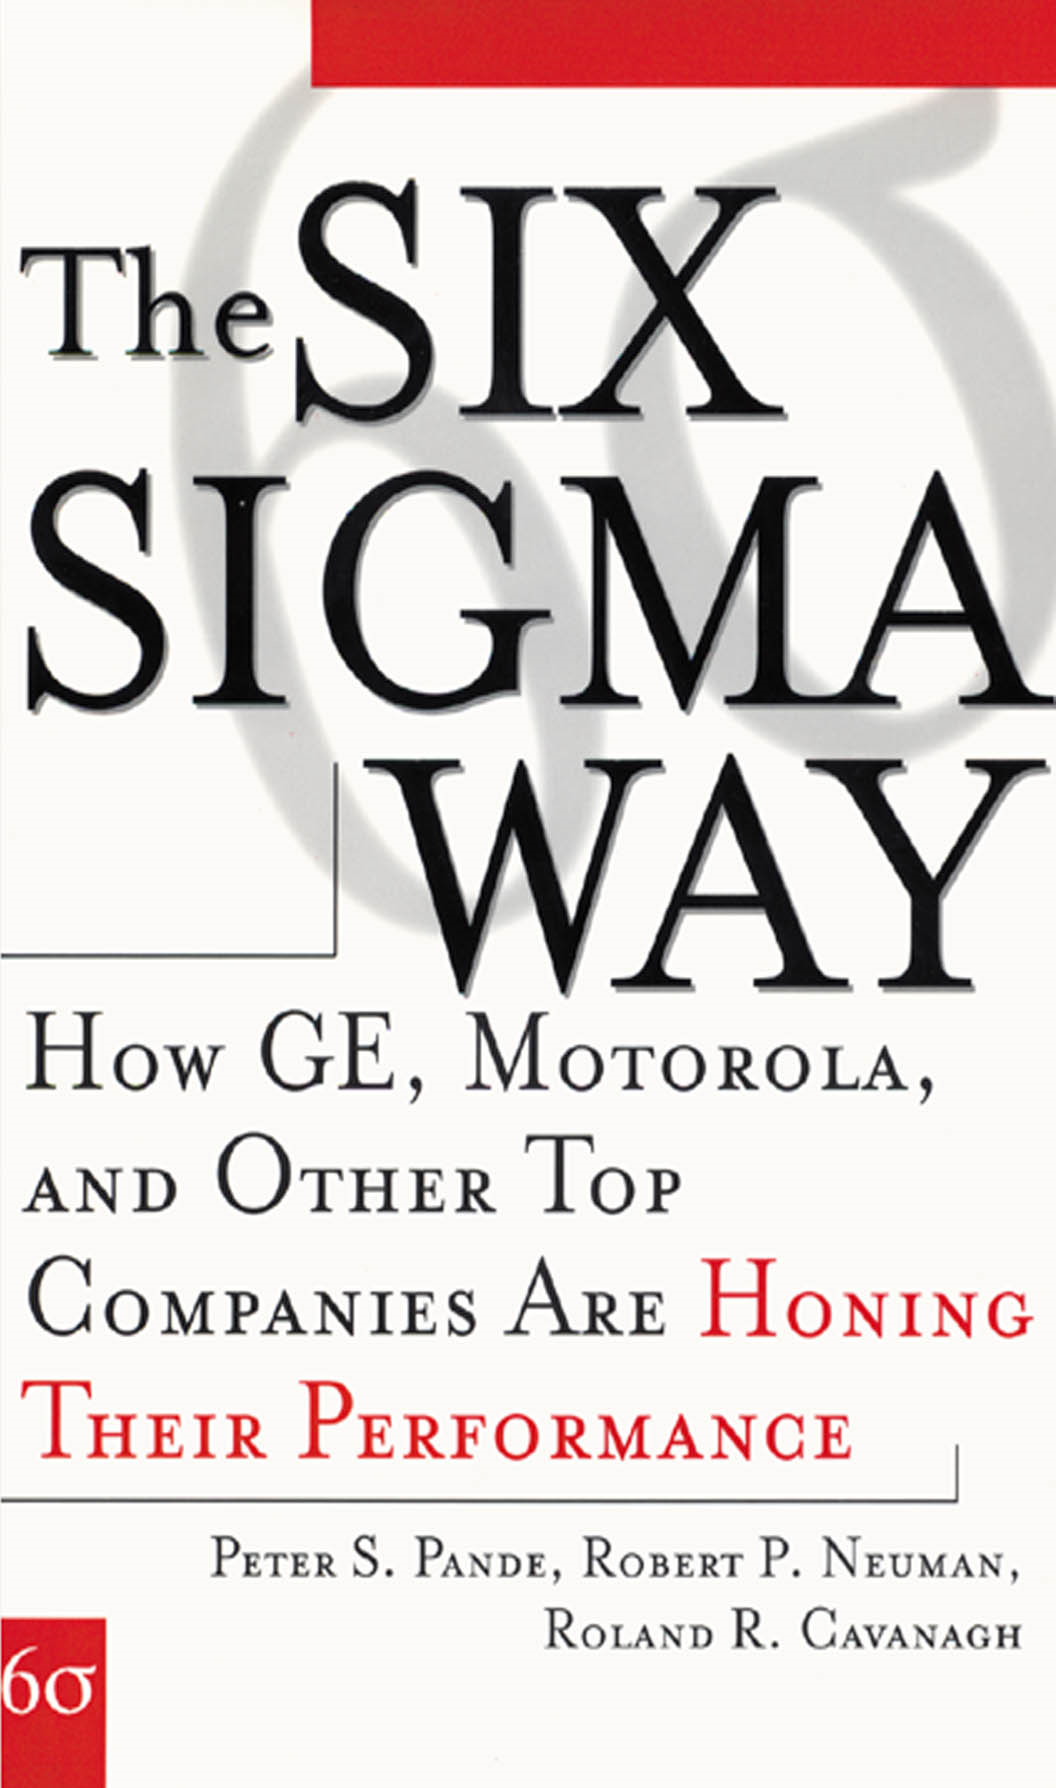 The Six Sigma Way: How GE, Motorola, and Other Top Companies are Honing Their Performance By:  Robert Neuman, Roland Cavanagh,Peter Pande